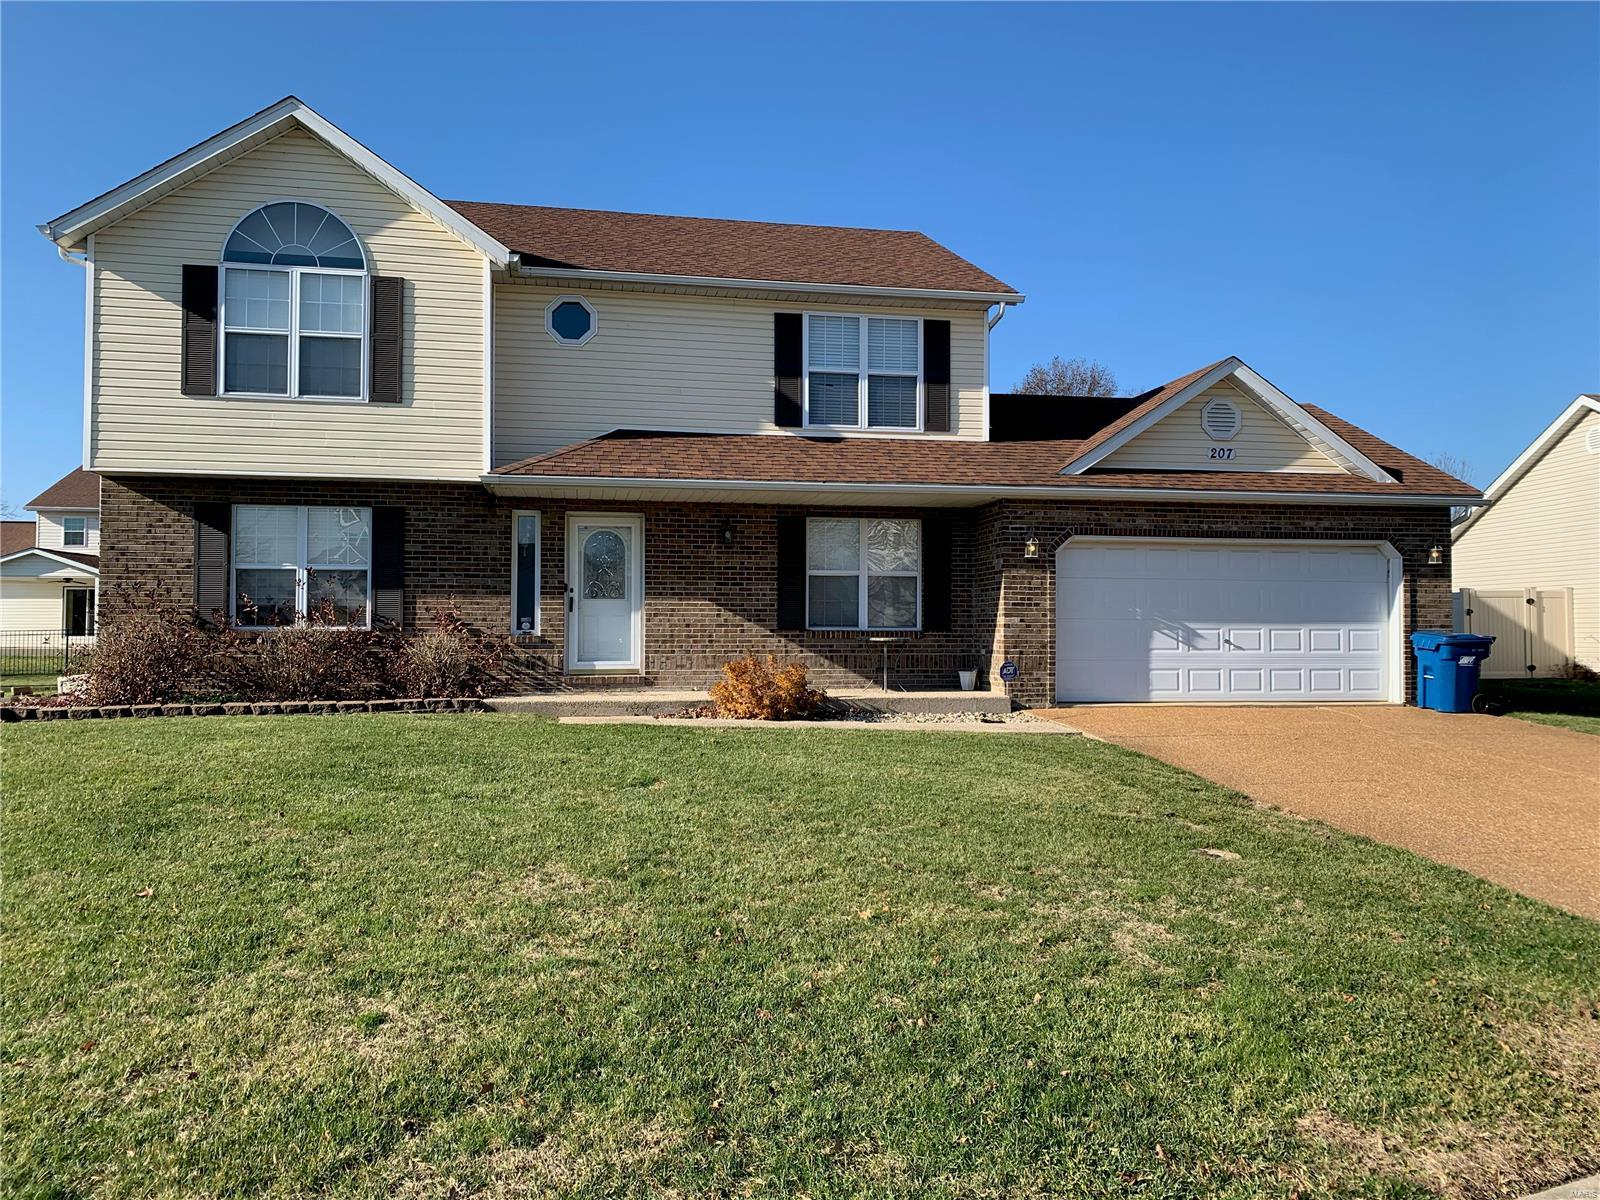 207 Joan Drive Property Photo - New Baden, IL real estate listing